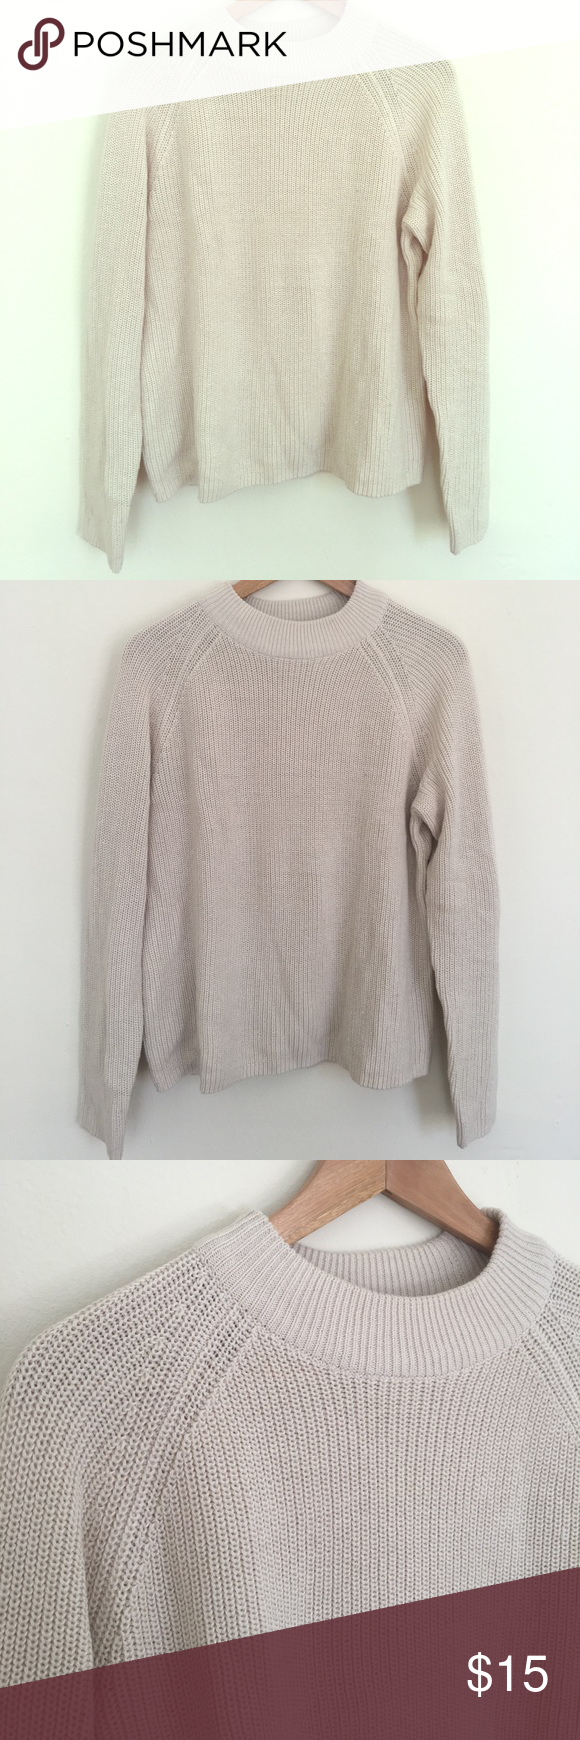 Cream Turtleneck from H&M Cream colored Turtleneck sweater from ...